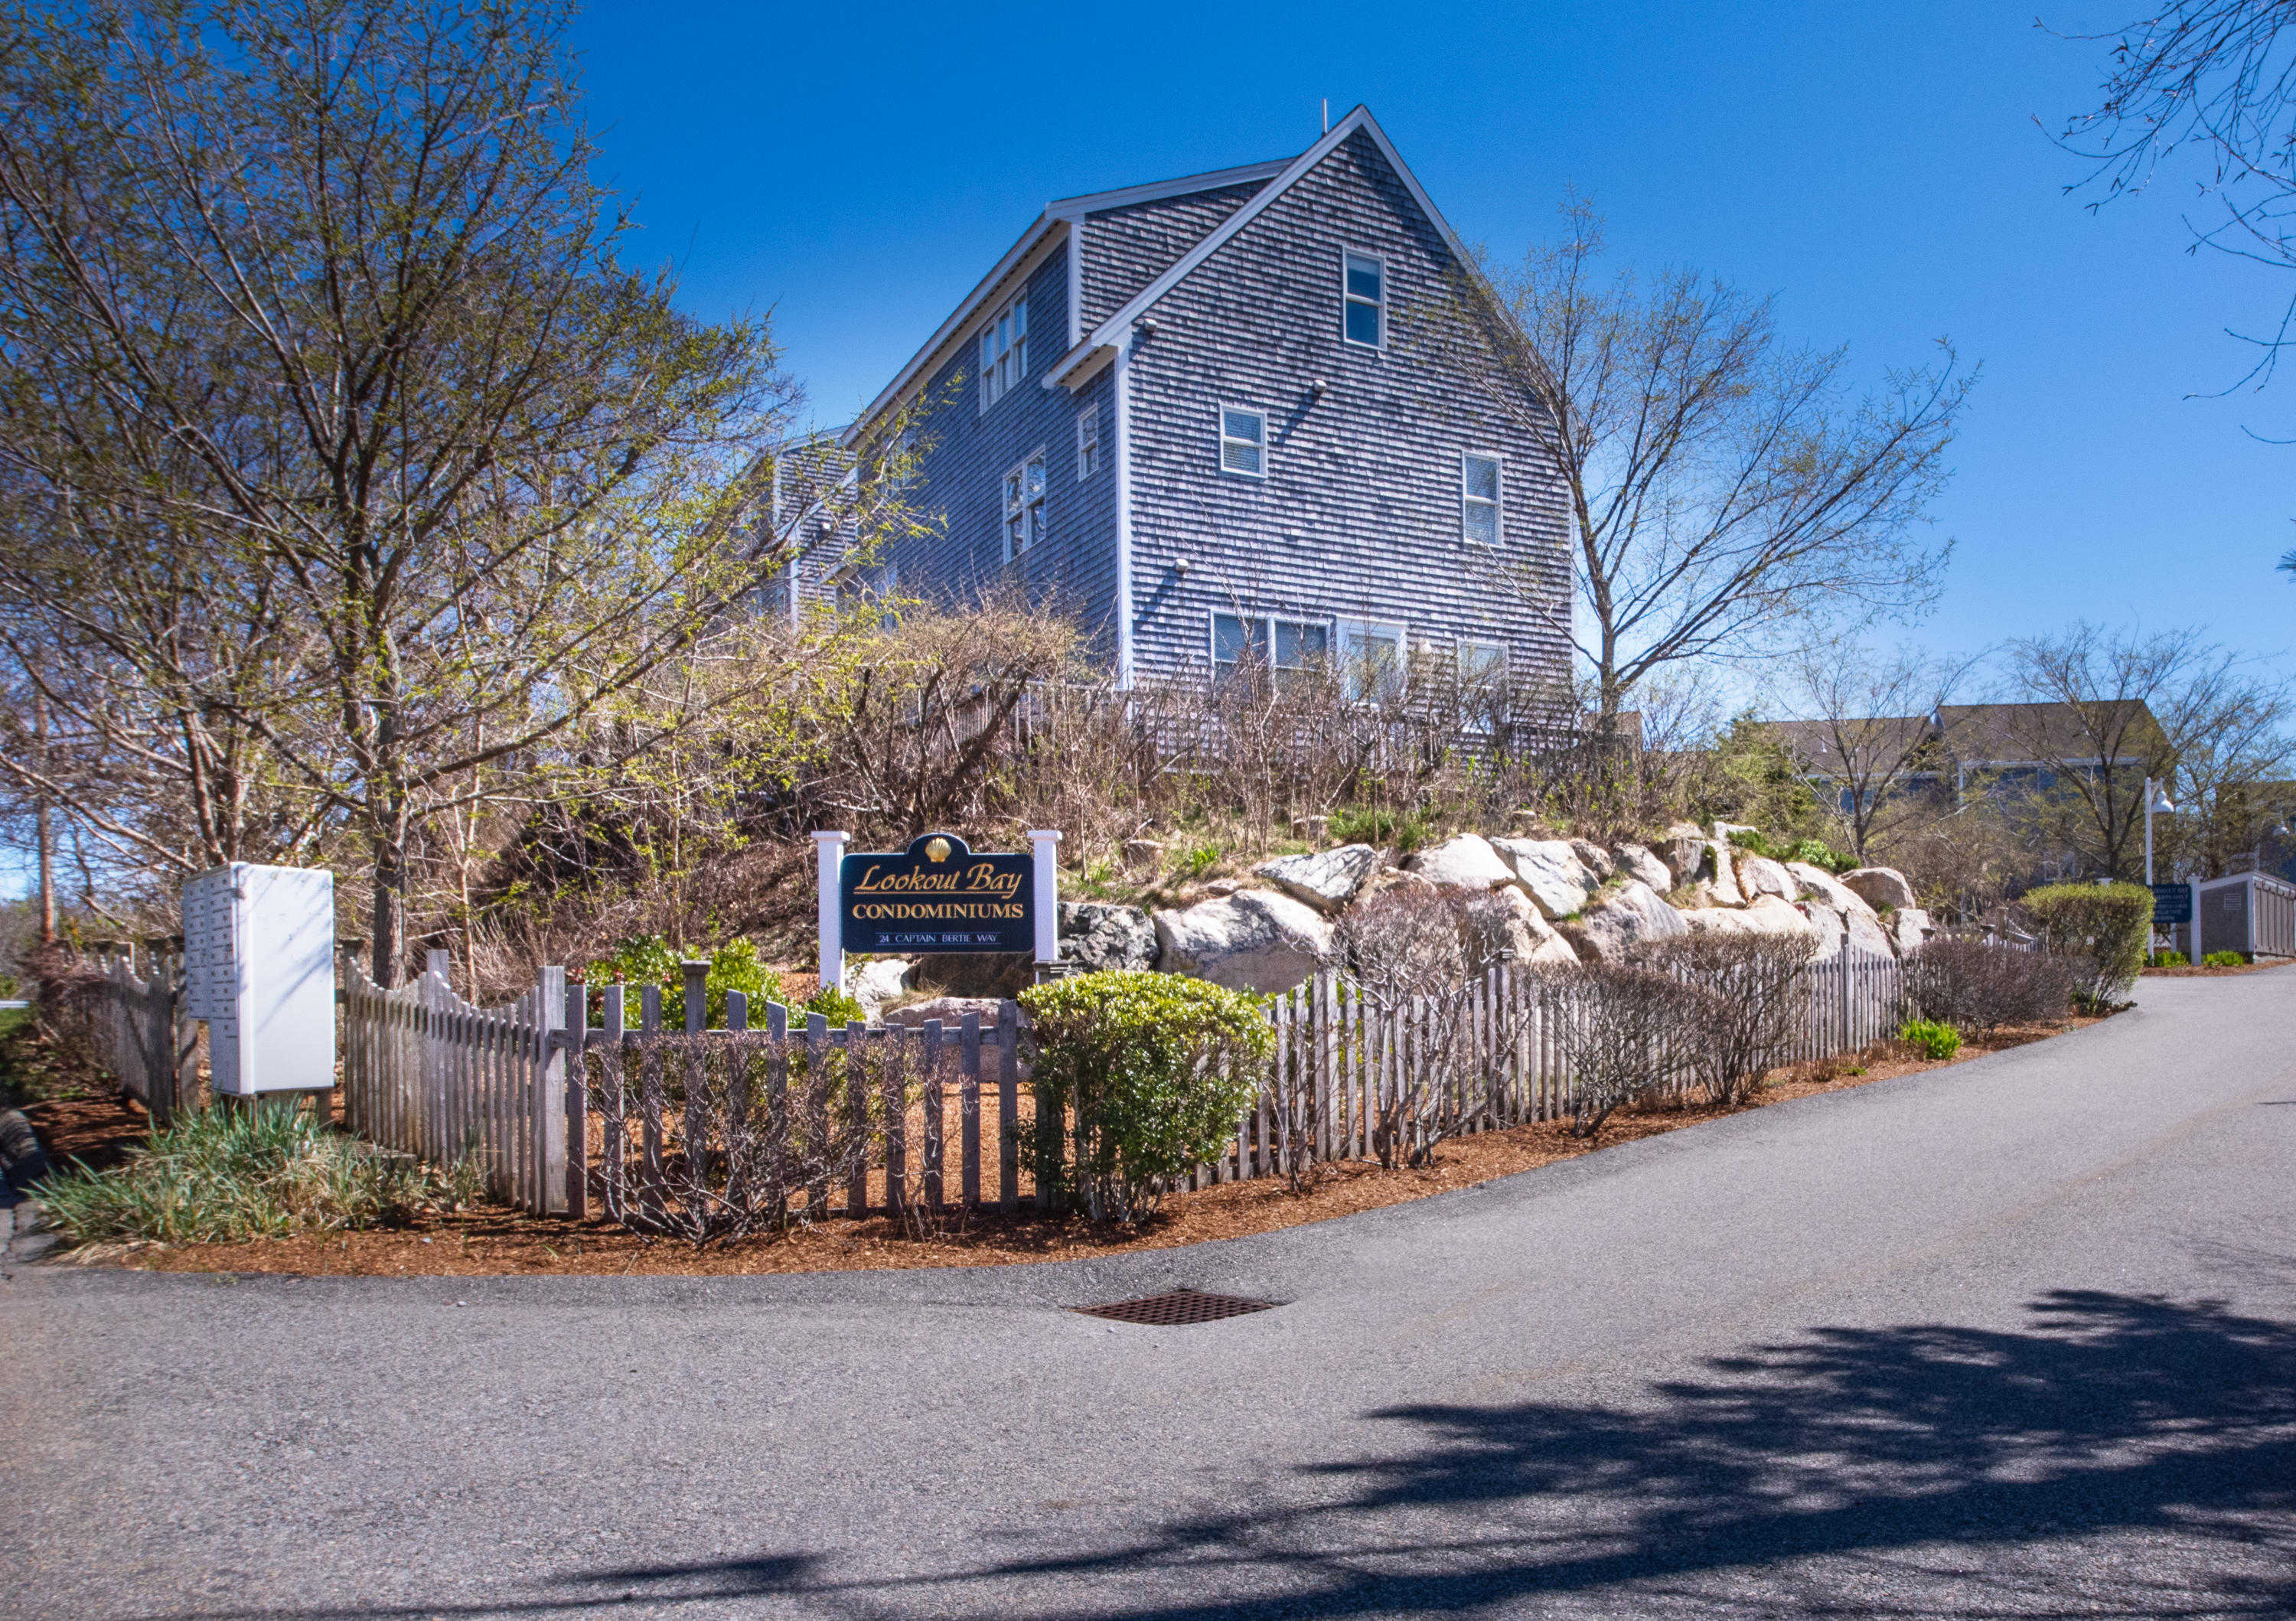 24 Capt Berties Way #Q, Provincetown, MA 02657 now has a new price of $734,500!